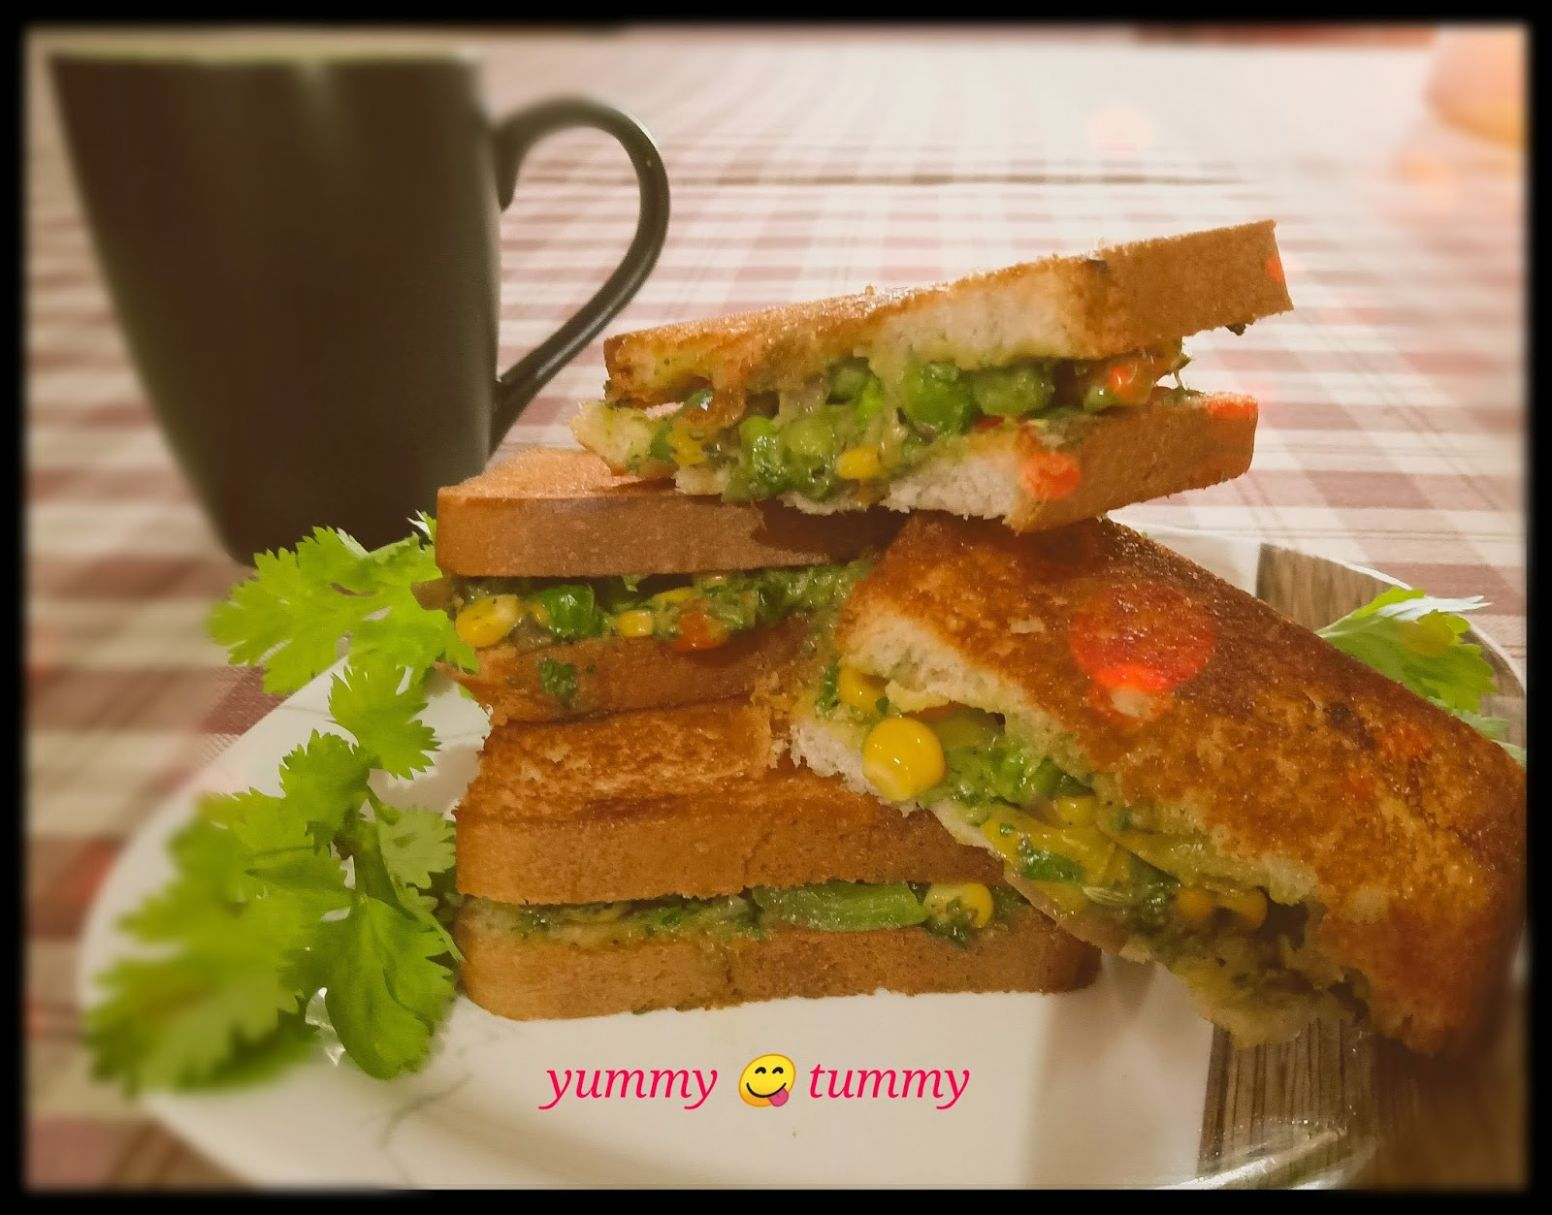 Yummytummy: Veg Mayonnaise Sandwich - Sandwich Recipes Yummy Tummy